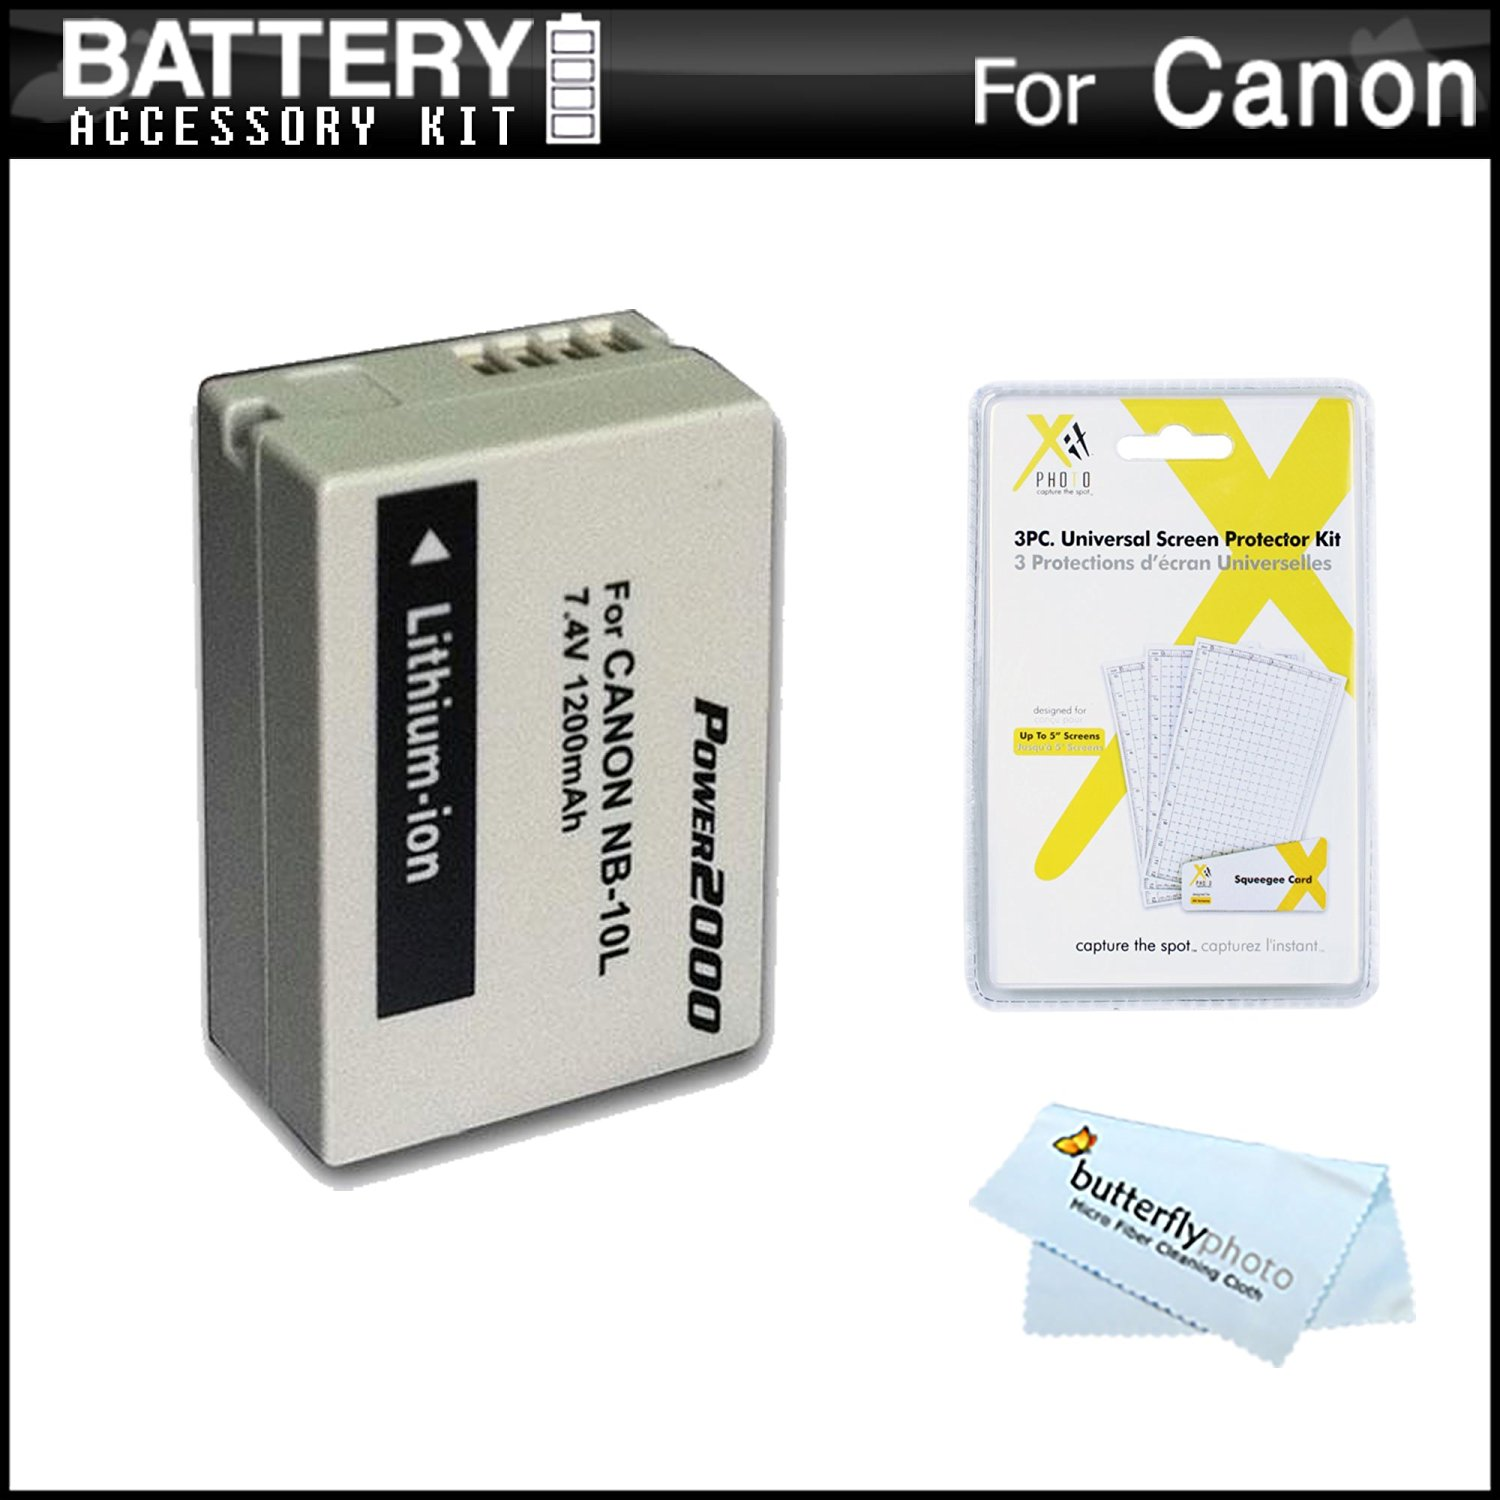 NB-10L Battery Kit For Canon PowerShot SX40 HS, SX40HS, SX50 HS, SX50HS, Powershot G15, PowerShot G16, G1 X, G1X, G3 X Digital Camera Includes Extended Replacement (1200Mah) NB-10L Battery + More